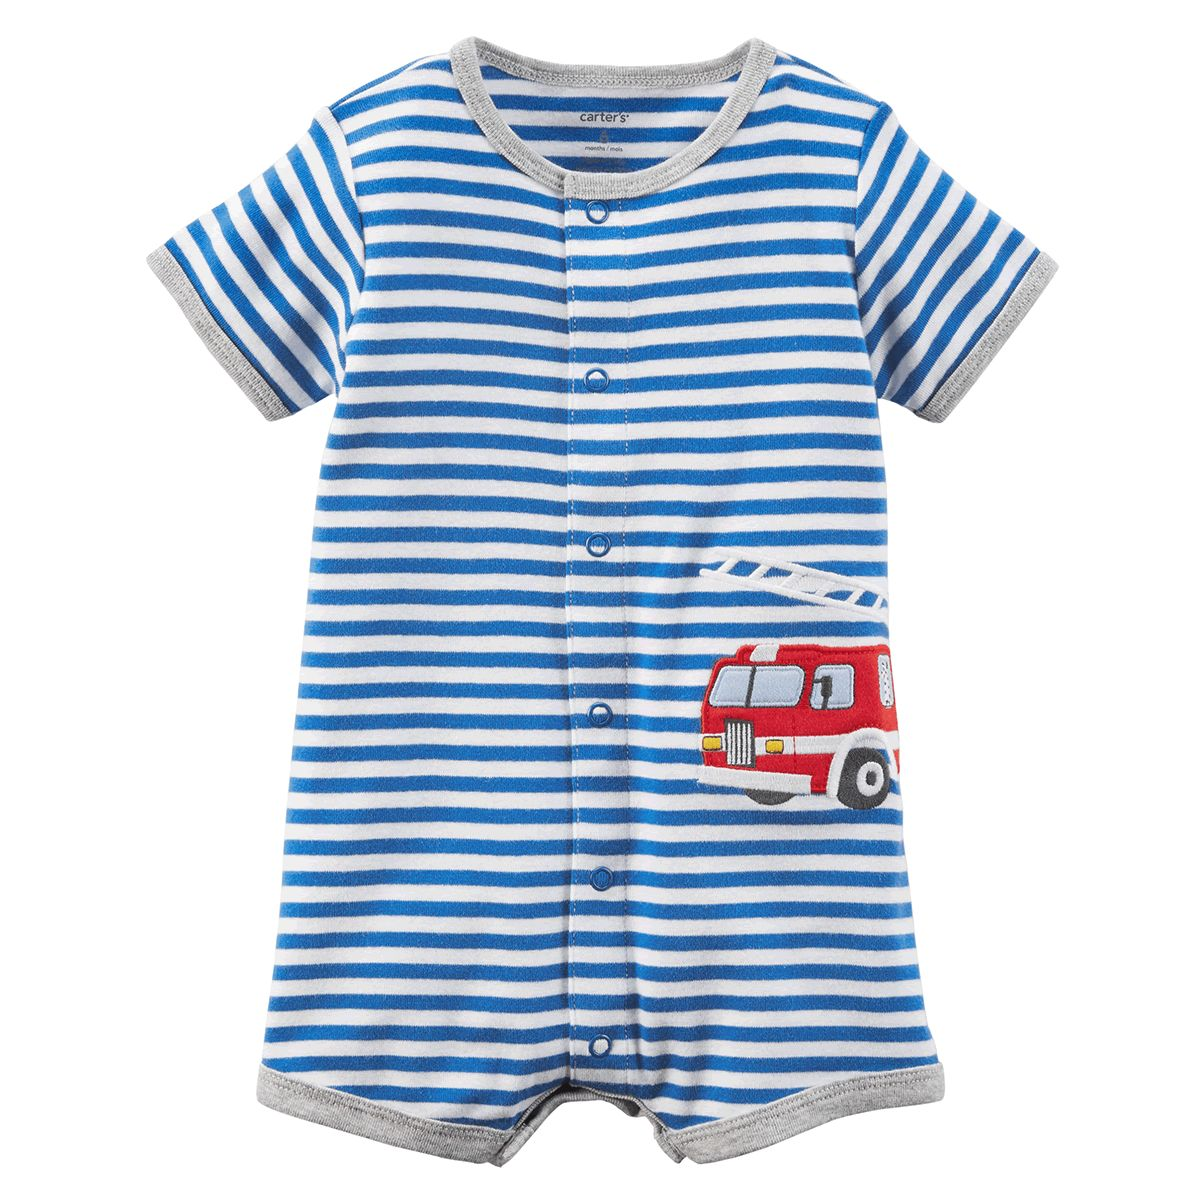 f95f89db673f Pajamas Carter s Baby Clothes - Macy s